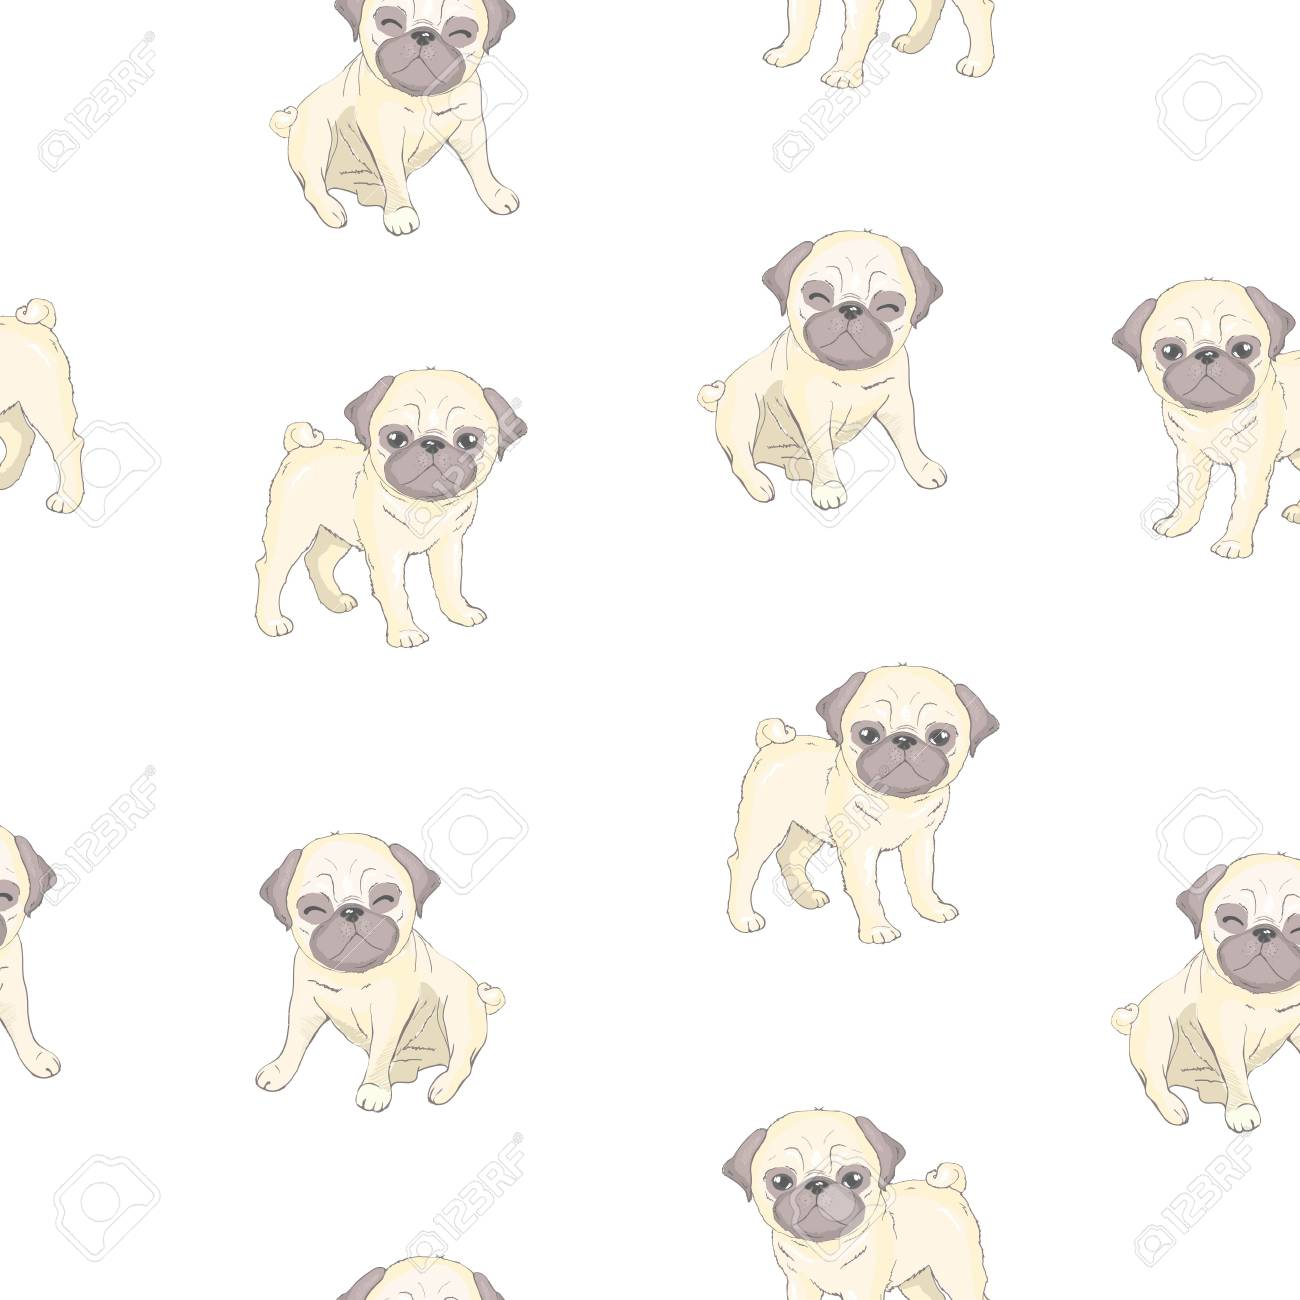 Vector Seamless Pattern With Cute Cartoon Dog Puppies Can Be Royalty Free Cliparts Vectors And Stock Illustration Image 104013680